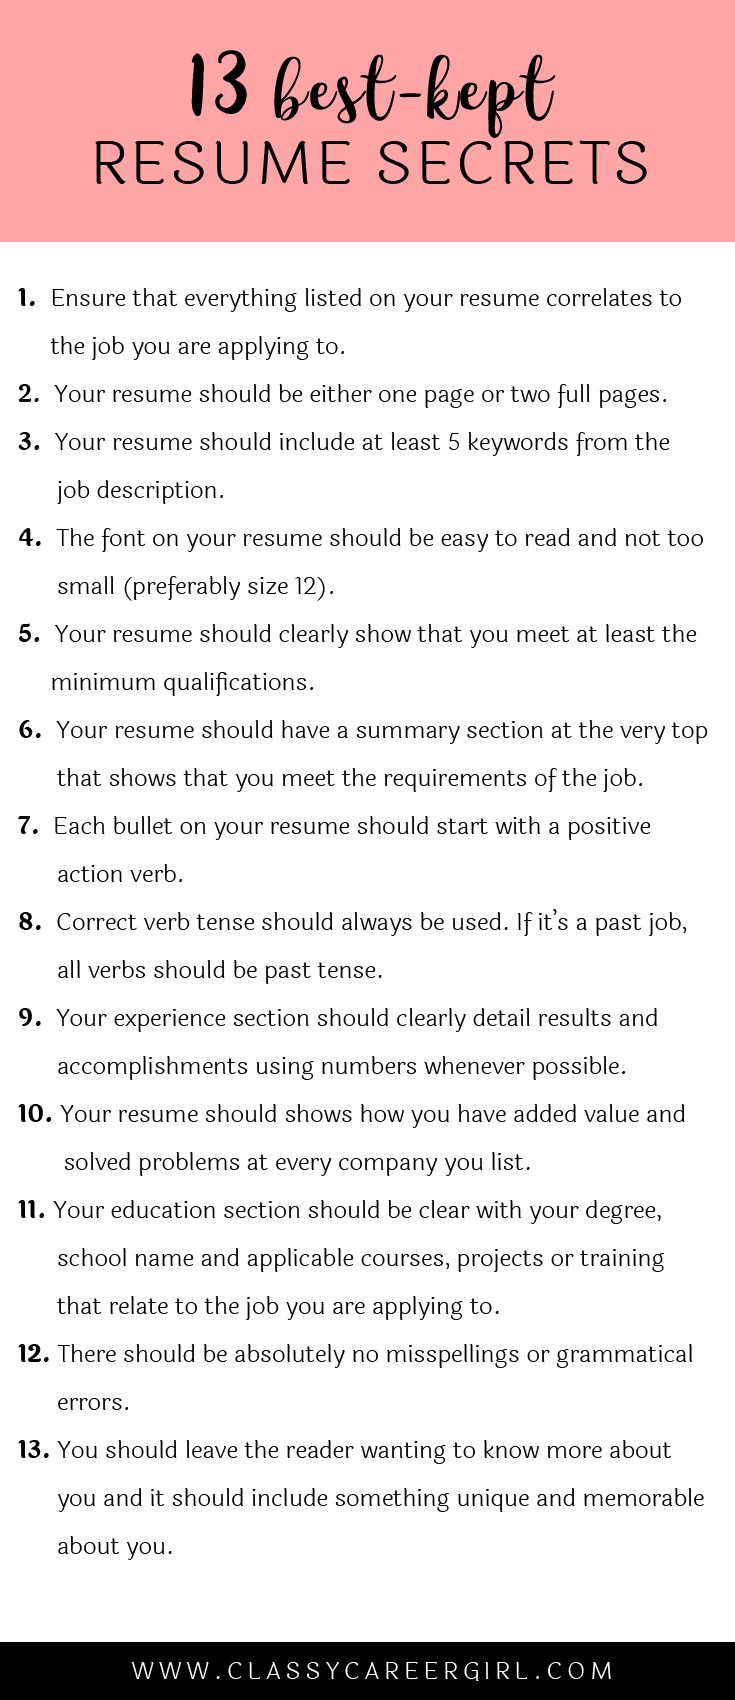 Opposenewapstandardsus  Personable  Ideas About Resume On Pinterest  Cv Format Resume Cv And  With Exquisite Some Hiring Managers Will Toss Your Resume Out If You Dont Know These  With Delectable Monster Resume Search Also Free Printable Resume Templates In Addition Teachers Resume And Linked In Resume As Well As Standard Resume Format Additionally Pilot Resume From Pinterestcom With Opposenewapstandardsus  Exquisite  Ideas About Resume On Pinterest  Cv Format Resume Cv And  With Delectable Some Hiring Managers Will Toss Your Resume Out If You Dont Know These  And Personable Monster Resume Search Also Free Printable Resume Templates In Addition Teachers Resume From Pinterestcom